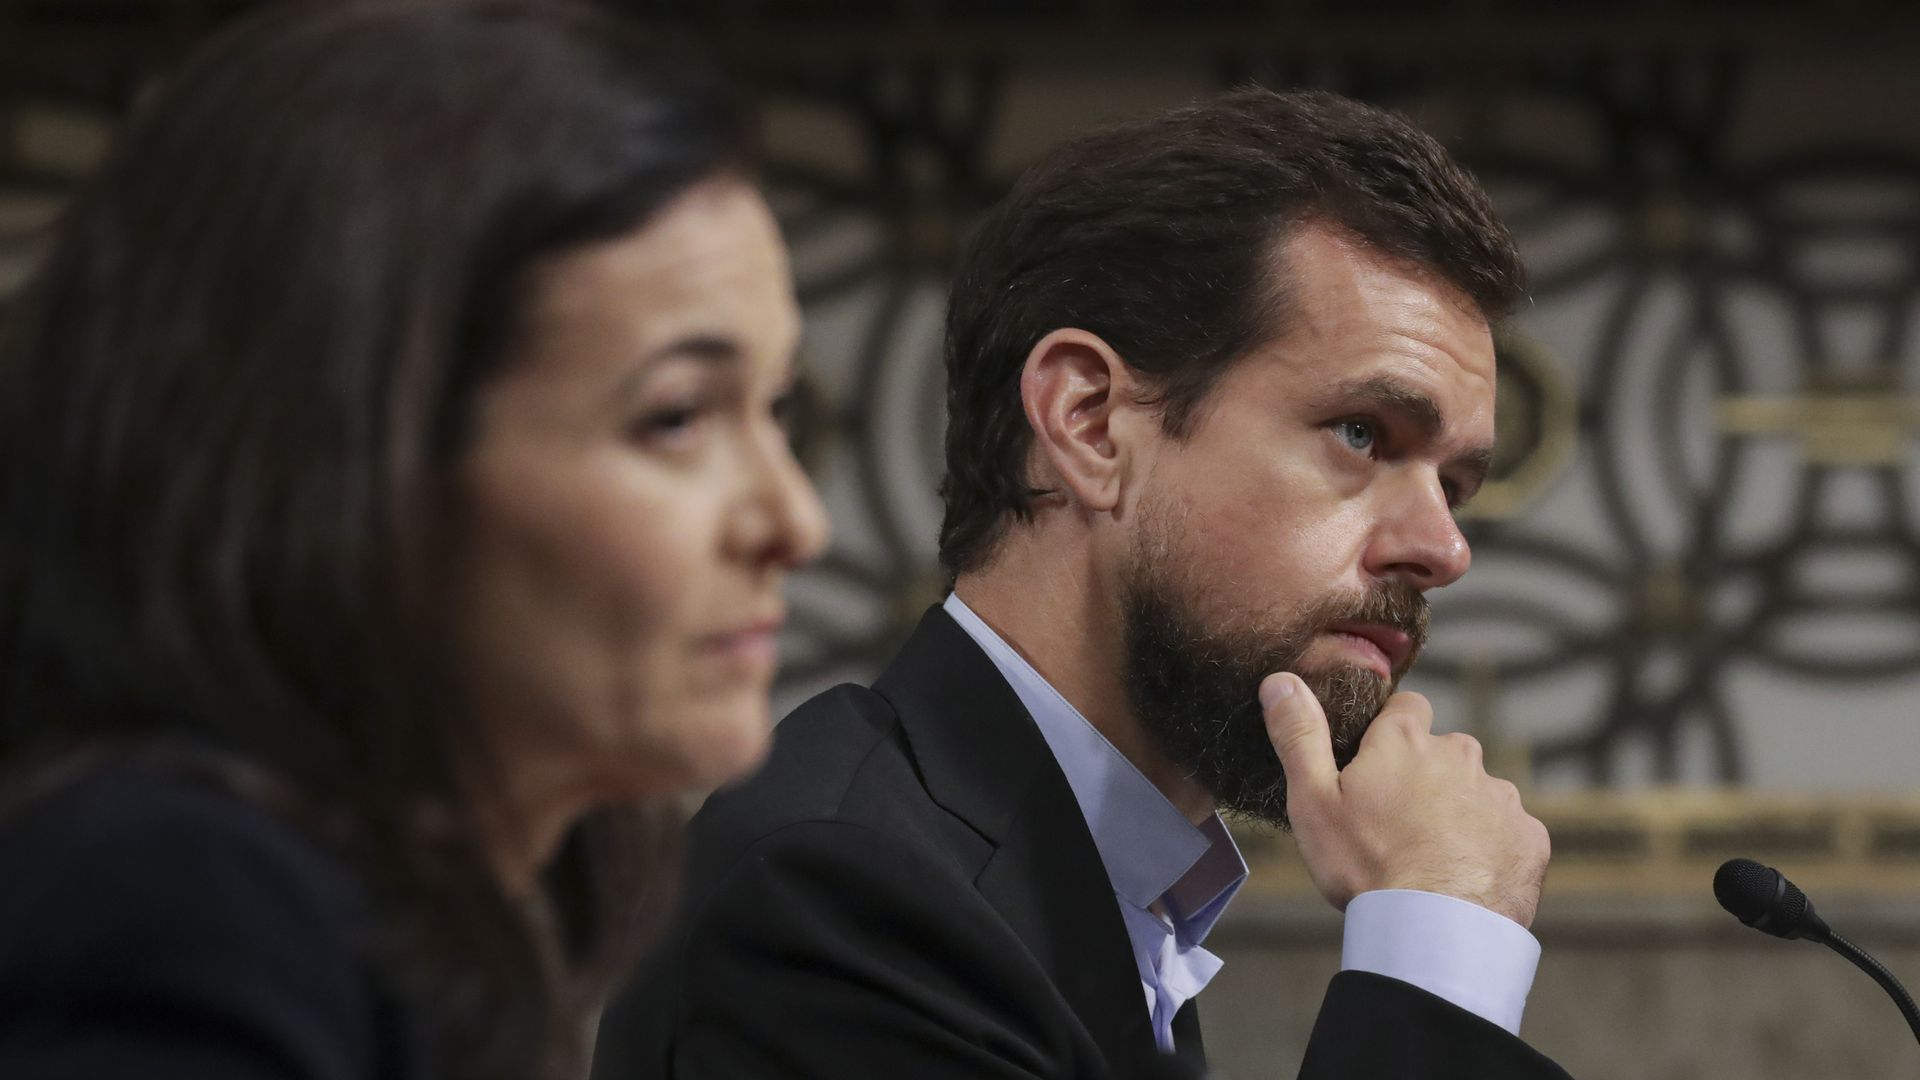 Facebook COO Sheryl Sandberg and Twitter CEO Jack Dorsey